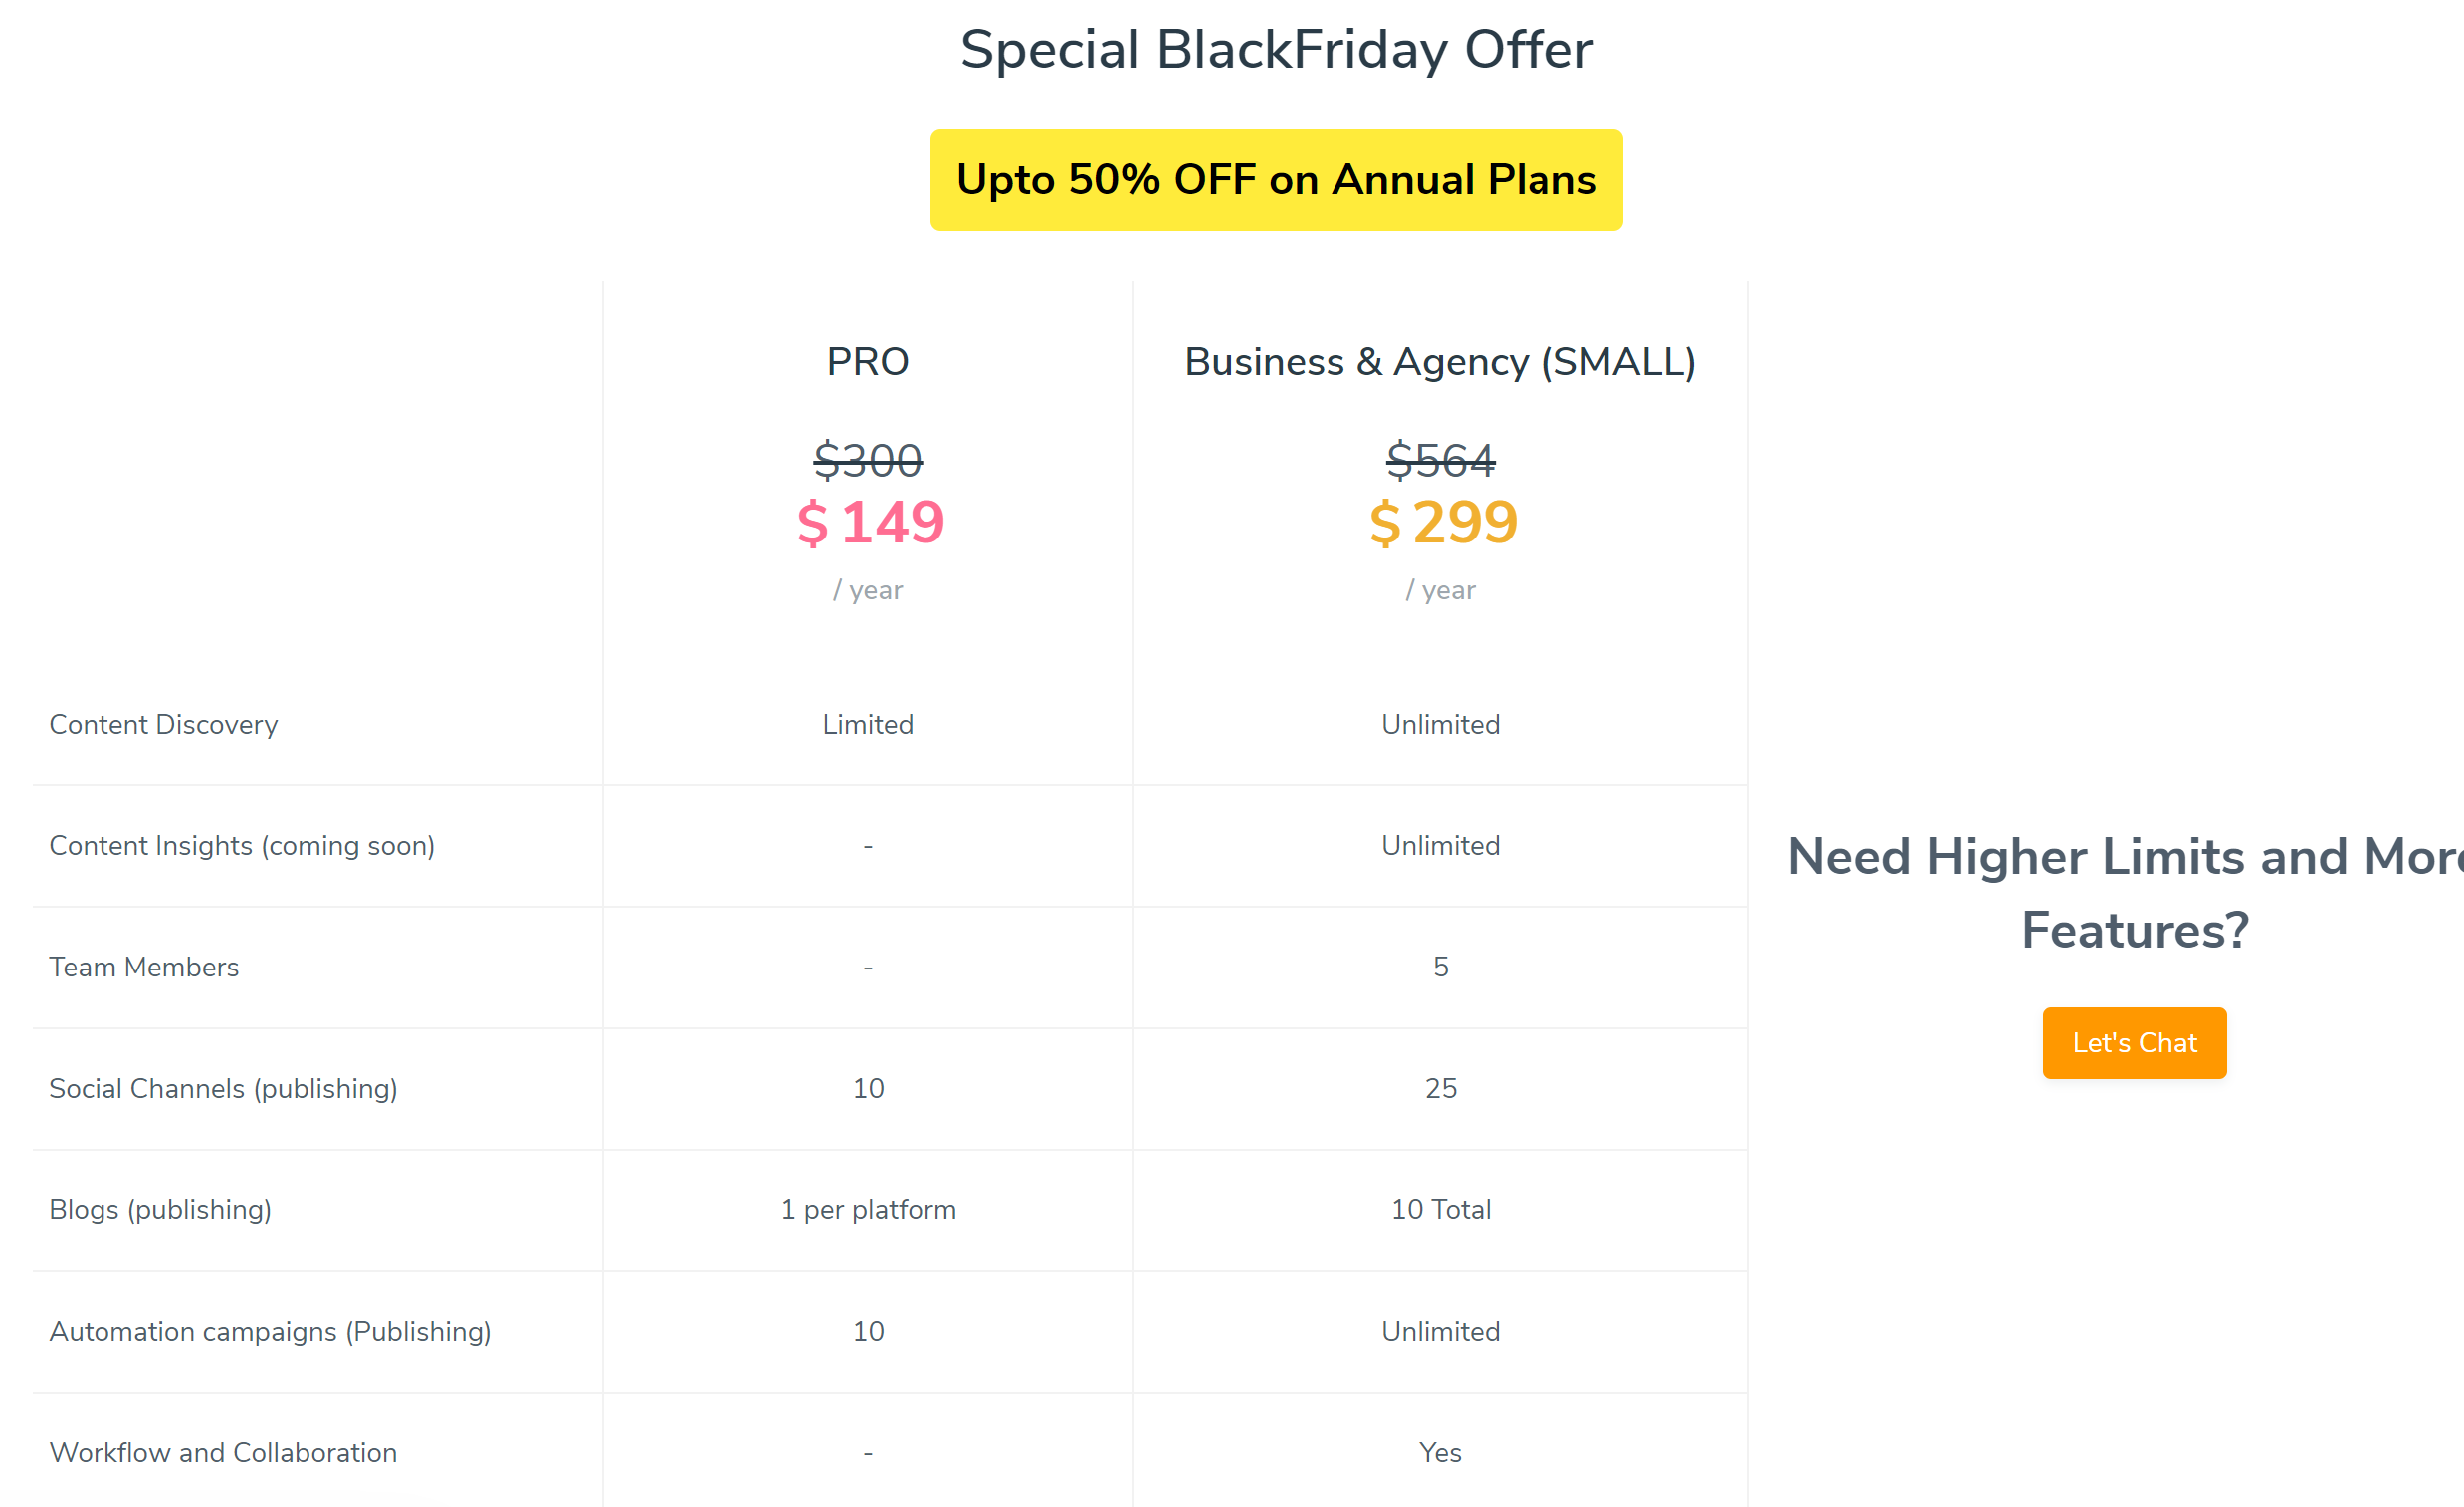 Content studio and replug Black Friday Sales - Check Out Deals Now